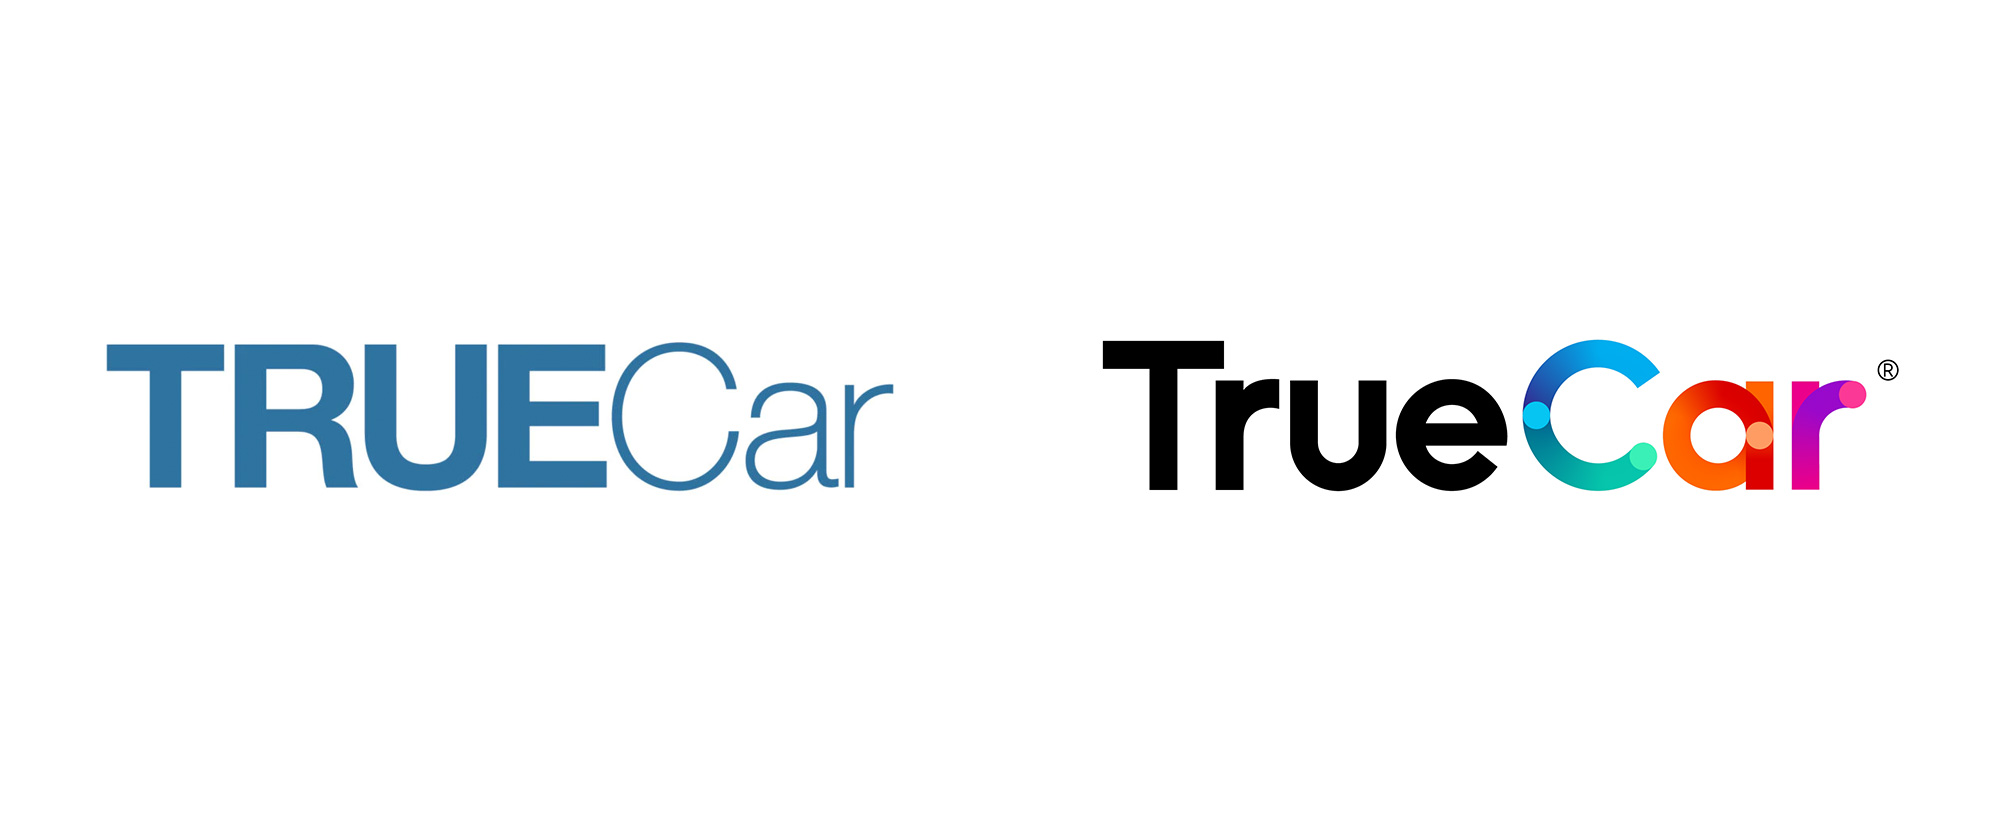 New Logo and Identity for TrueCar by Pentagram